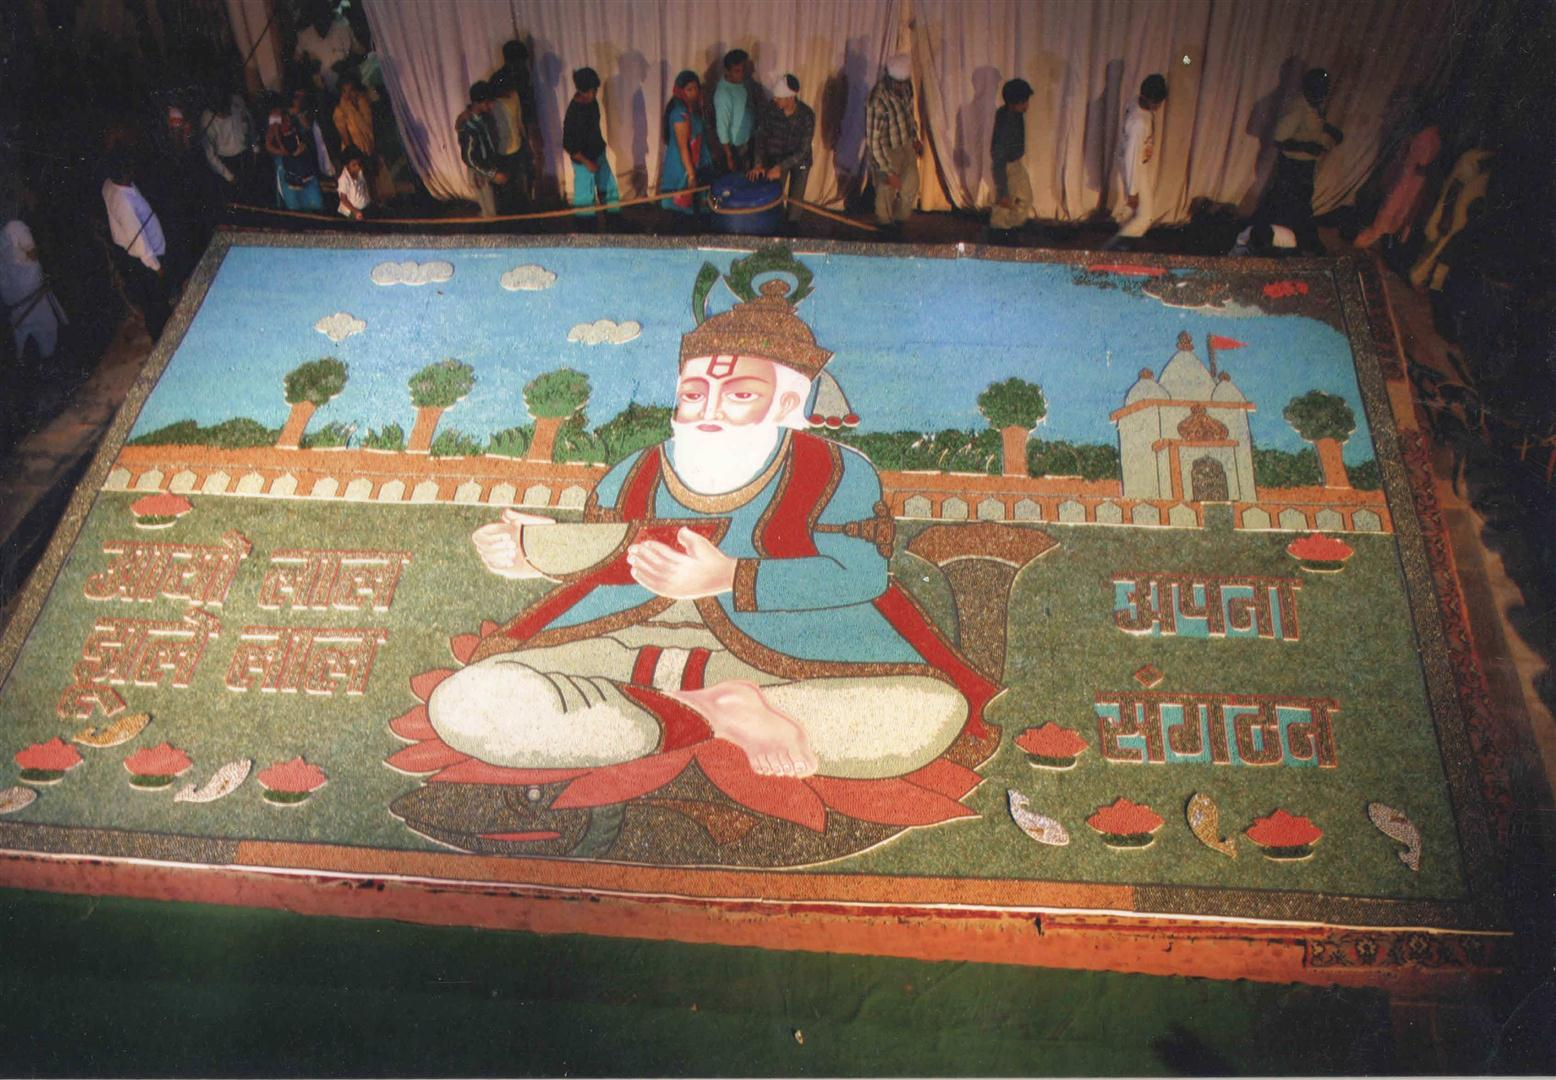 2006 : In this year, a record was created in Limca book which announces that 3 lakh marbles were used in potraying God Jhulelal.